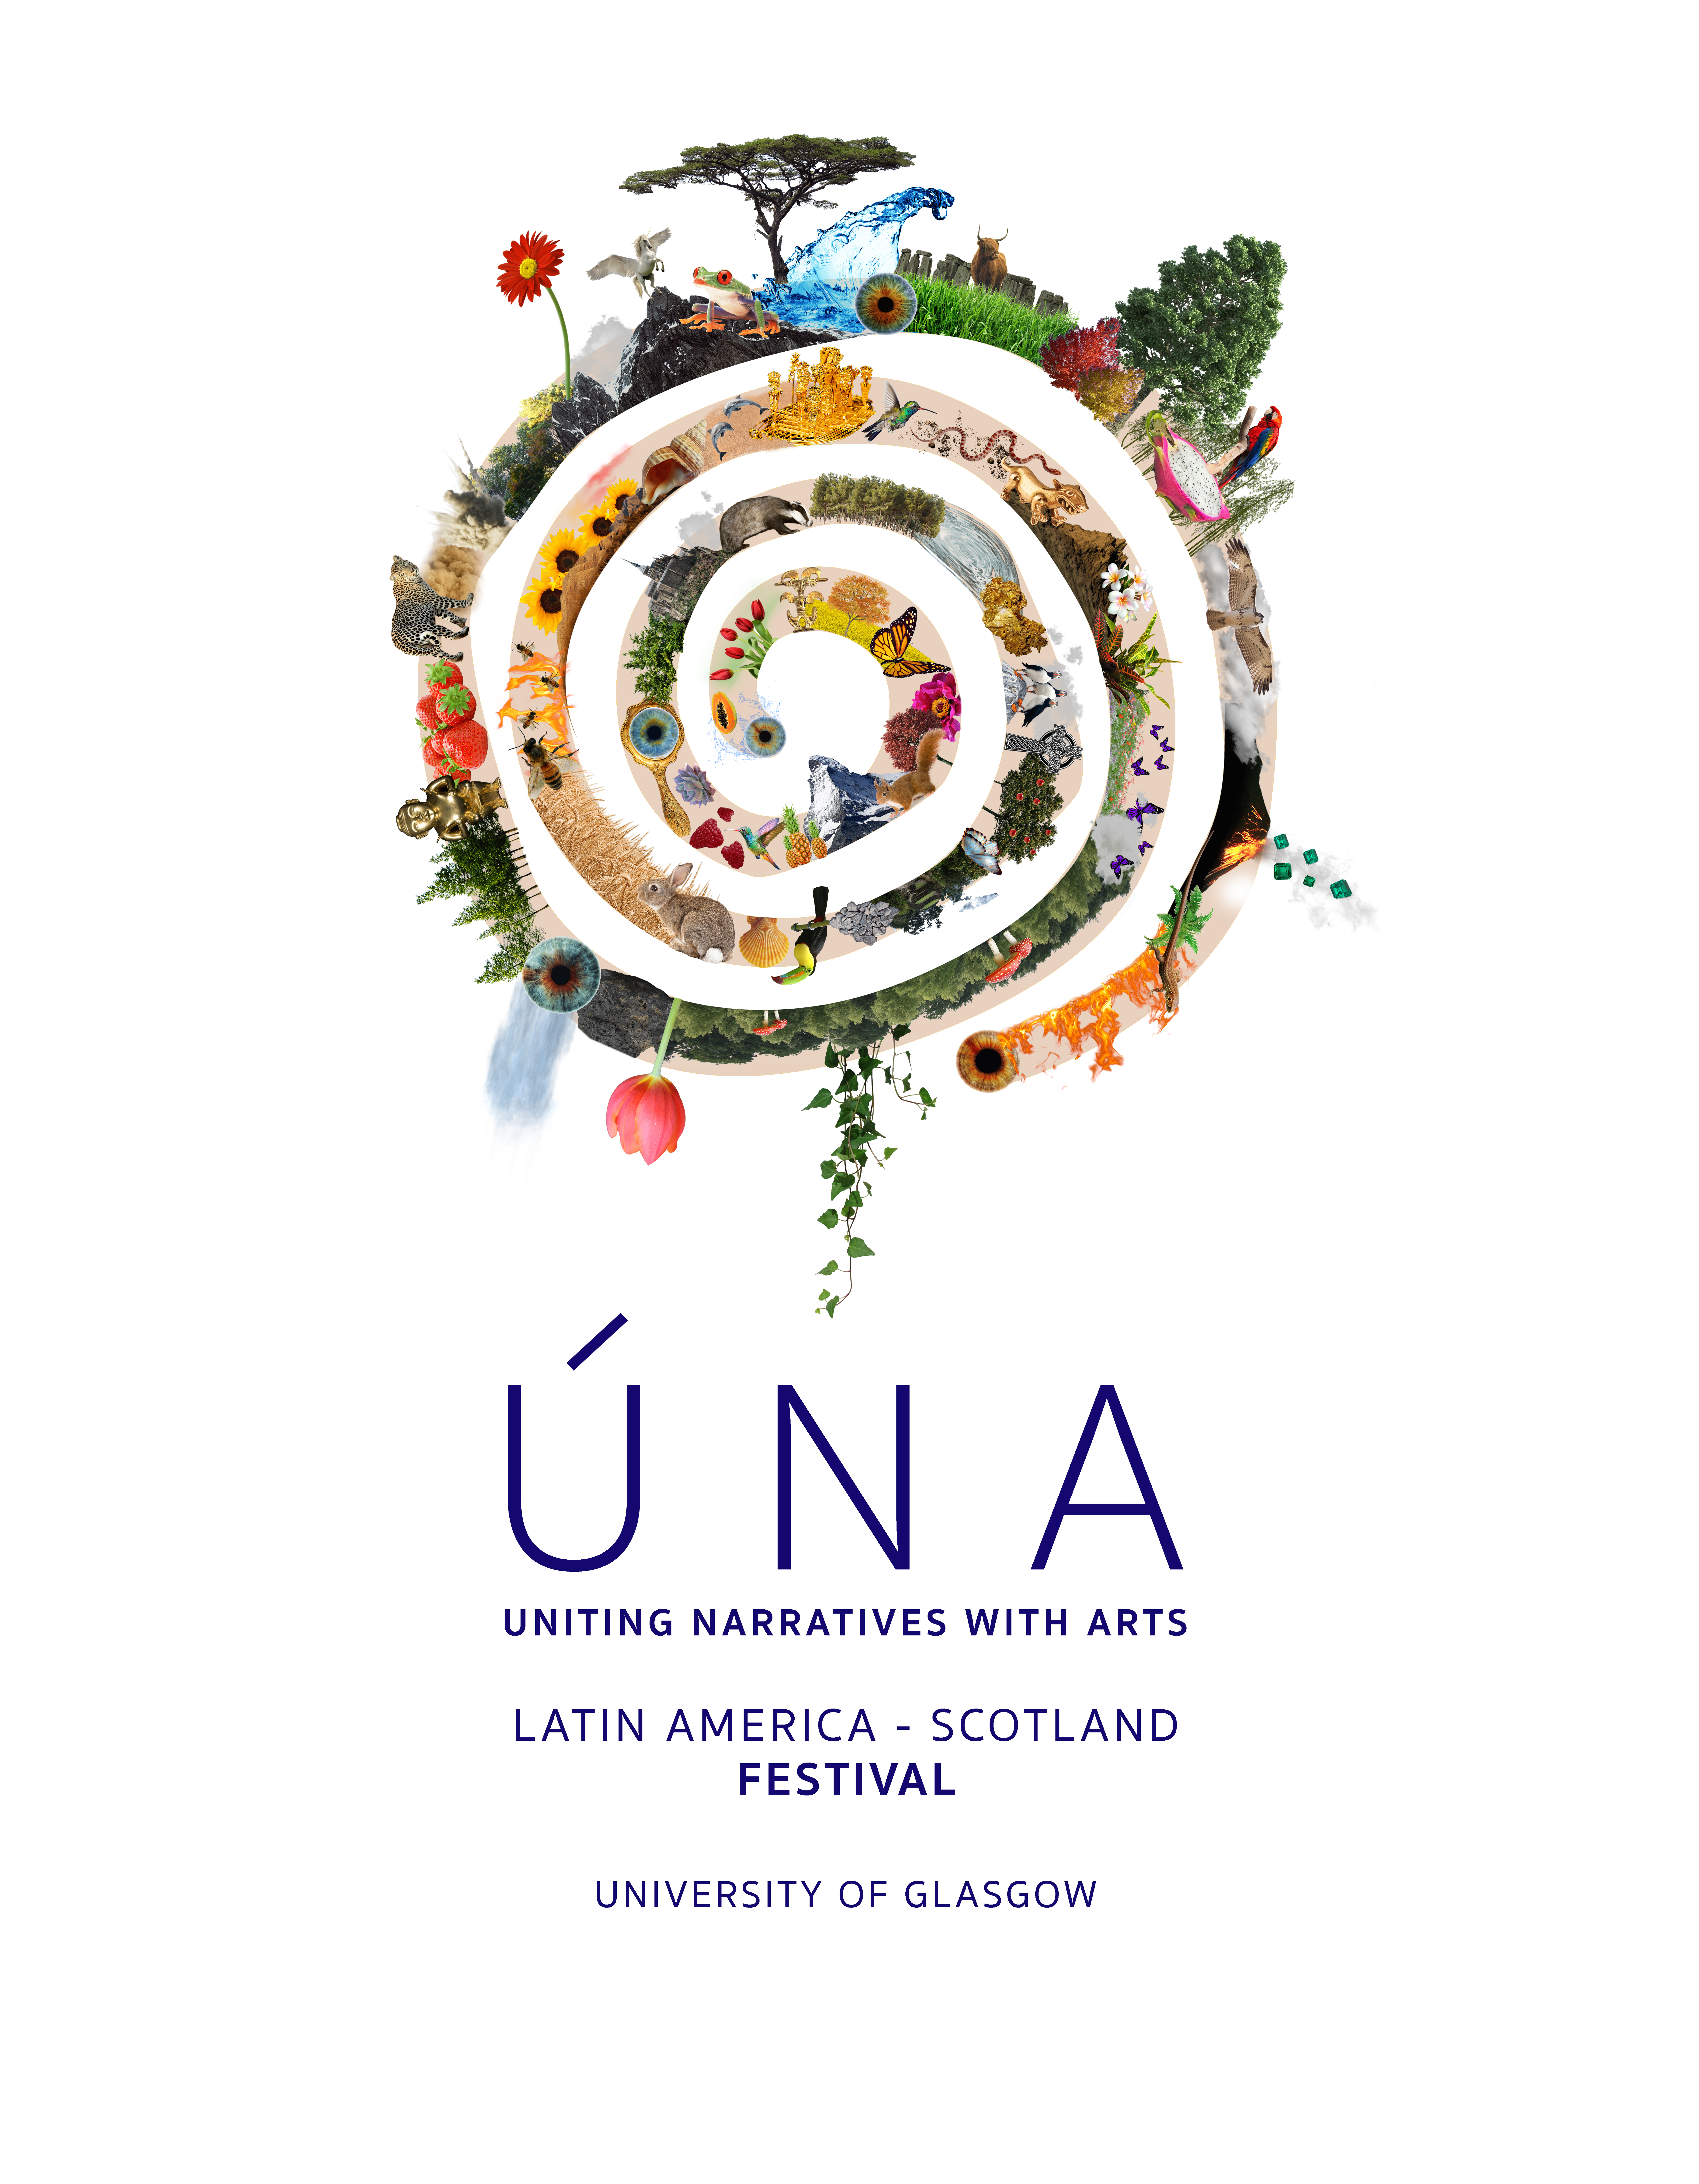 ÚNA: Uniting Narratives with Arts